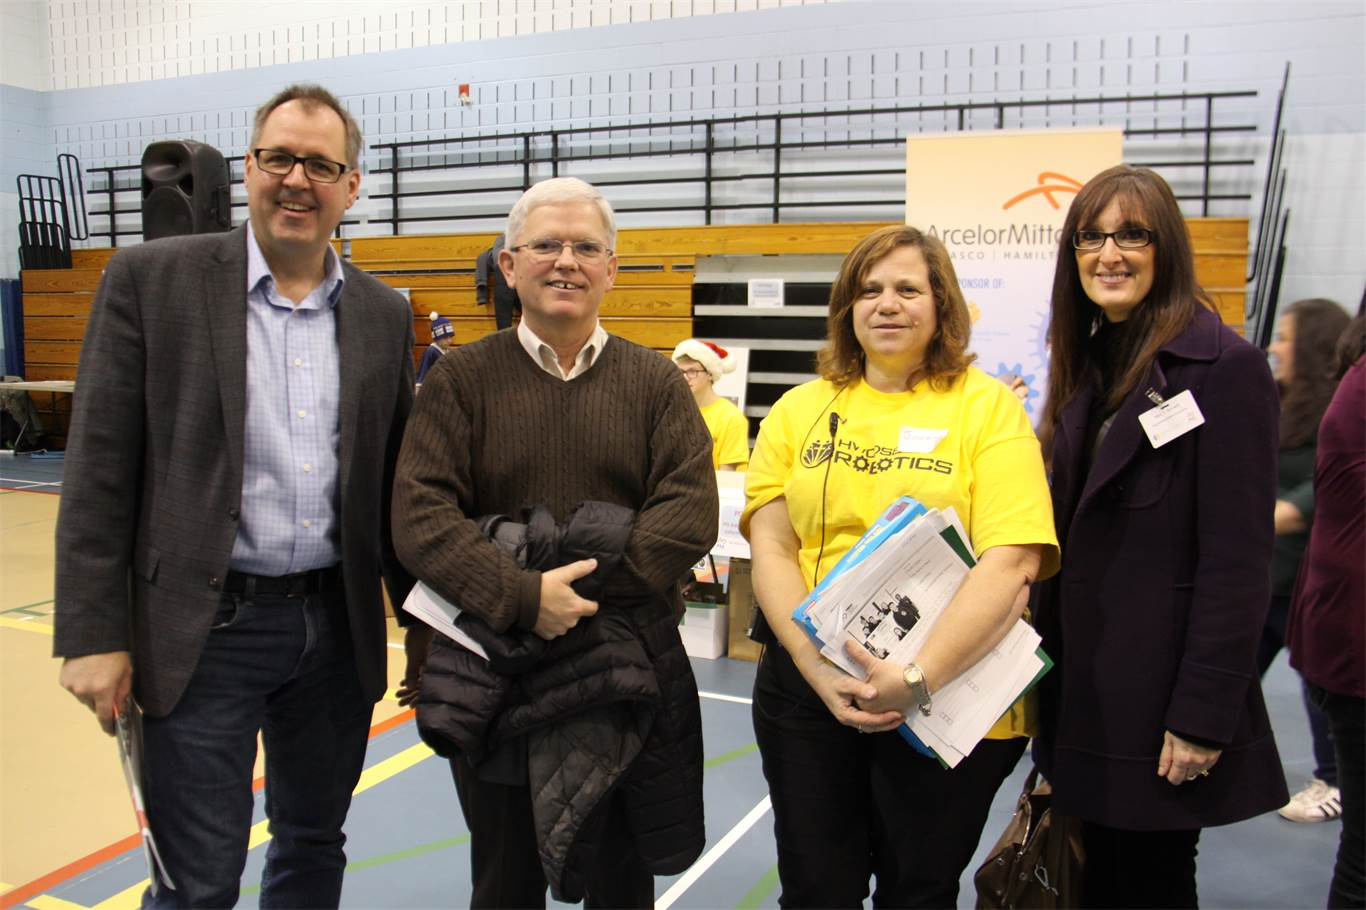 HWCDSB Robotics Convenor Joanne Bortolotto (2nd from right) with, from left to right, Superintendent of Education Morris Hucal, Chairperson Pat Daly and Superintendent of Education Toni Kovach.